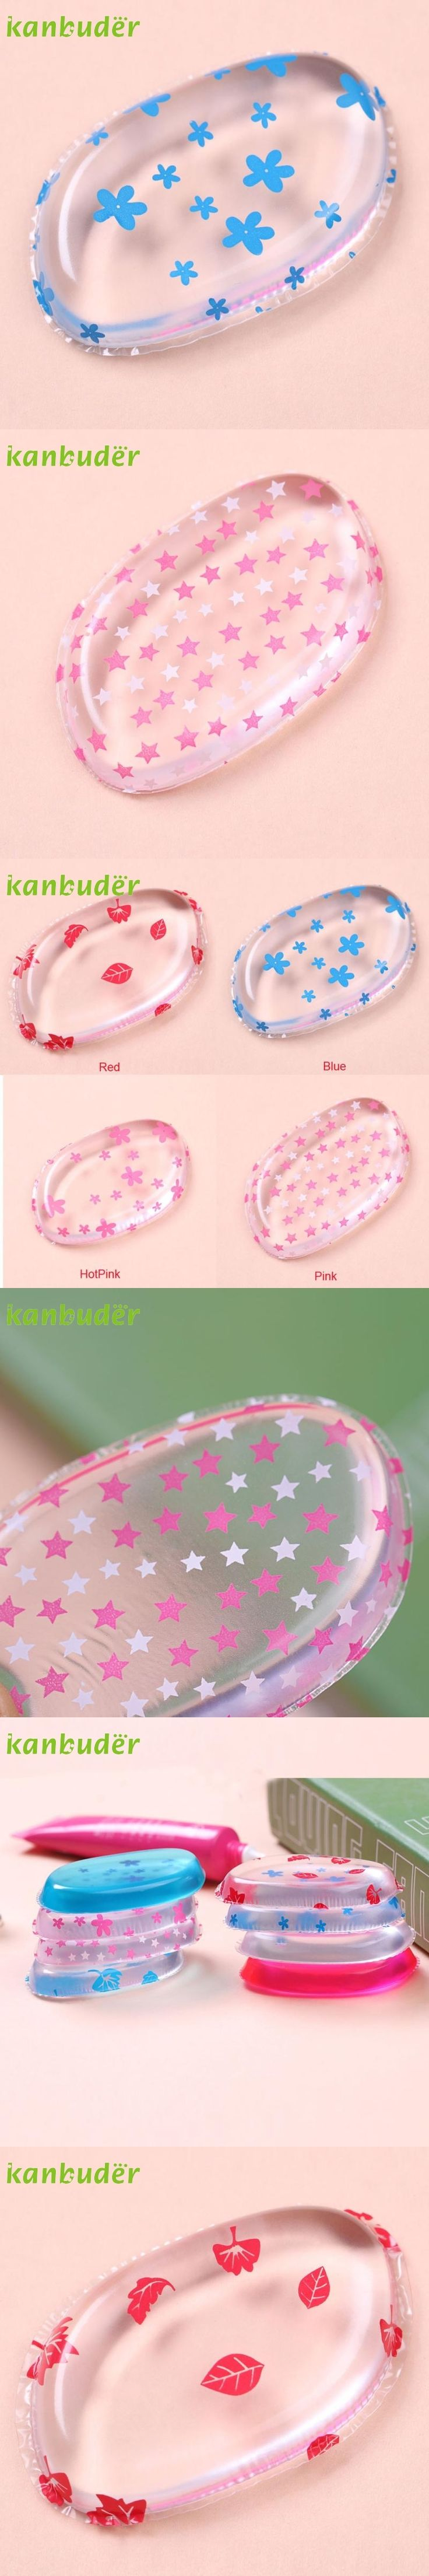 KANBUDER FeatheringWomen Flowers Printed Silicone Makeup Puff For Liquid Foundation BB Cream Beauty Essentials R168